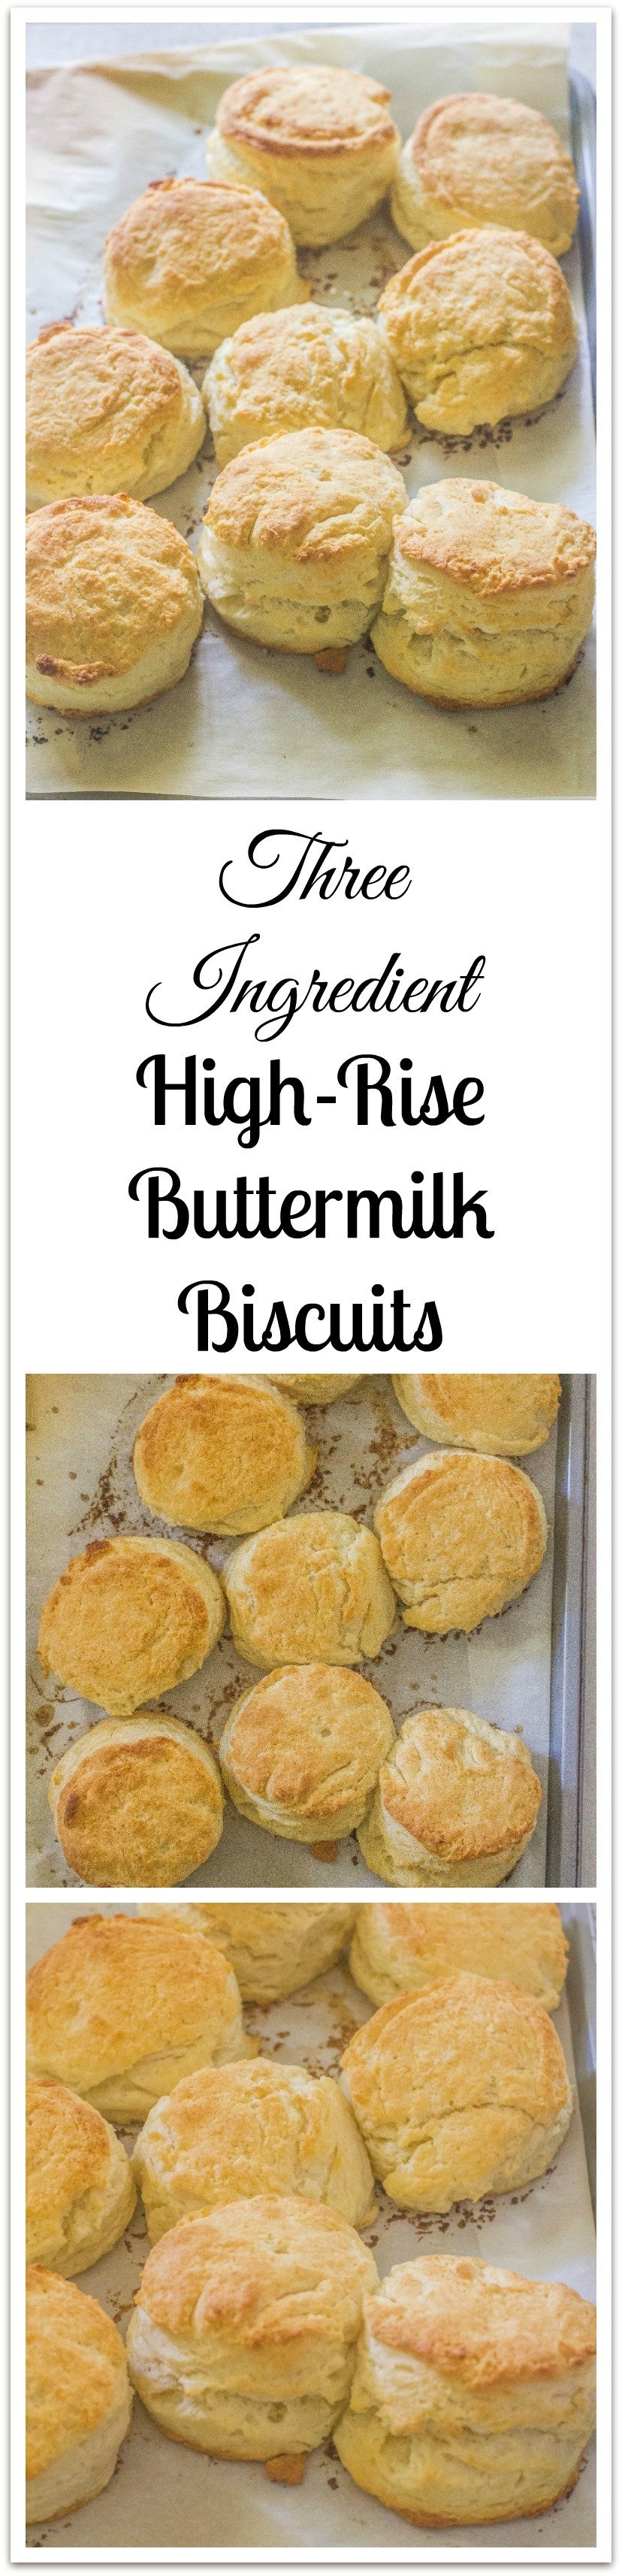 A hot  buttermilk biscuit, covered in gravy, syrup, jelly  or dripping in butter, is just about as good as food gets. #ButtermilkBiscuits